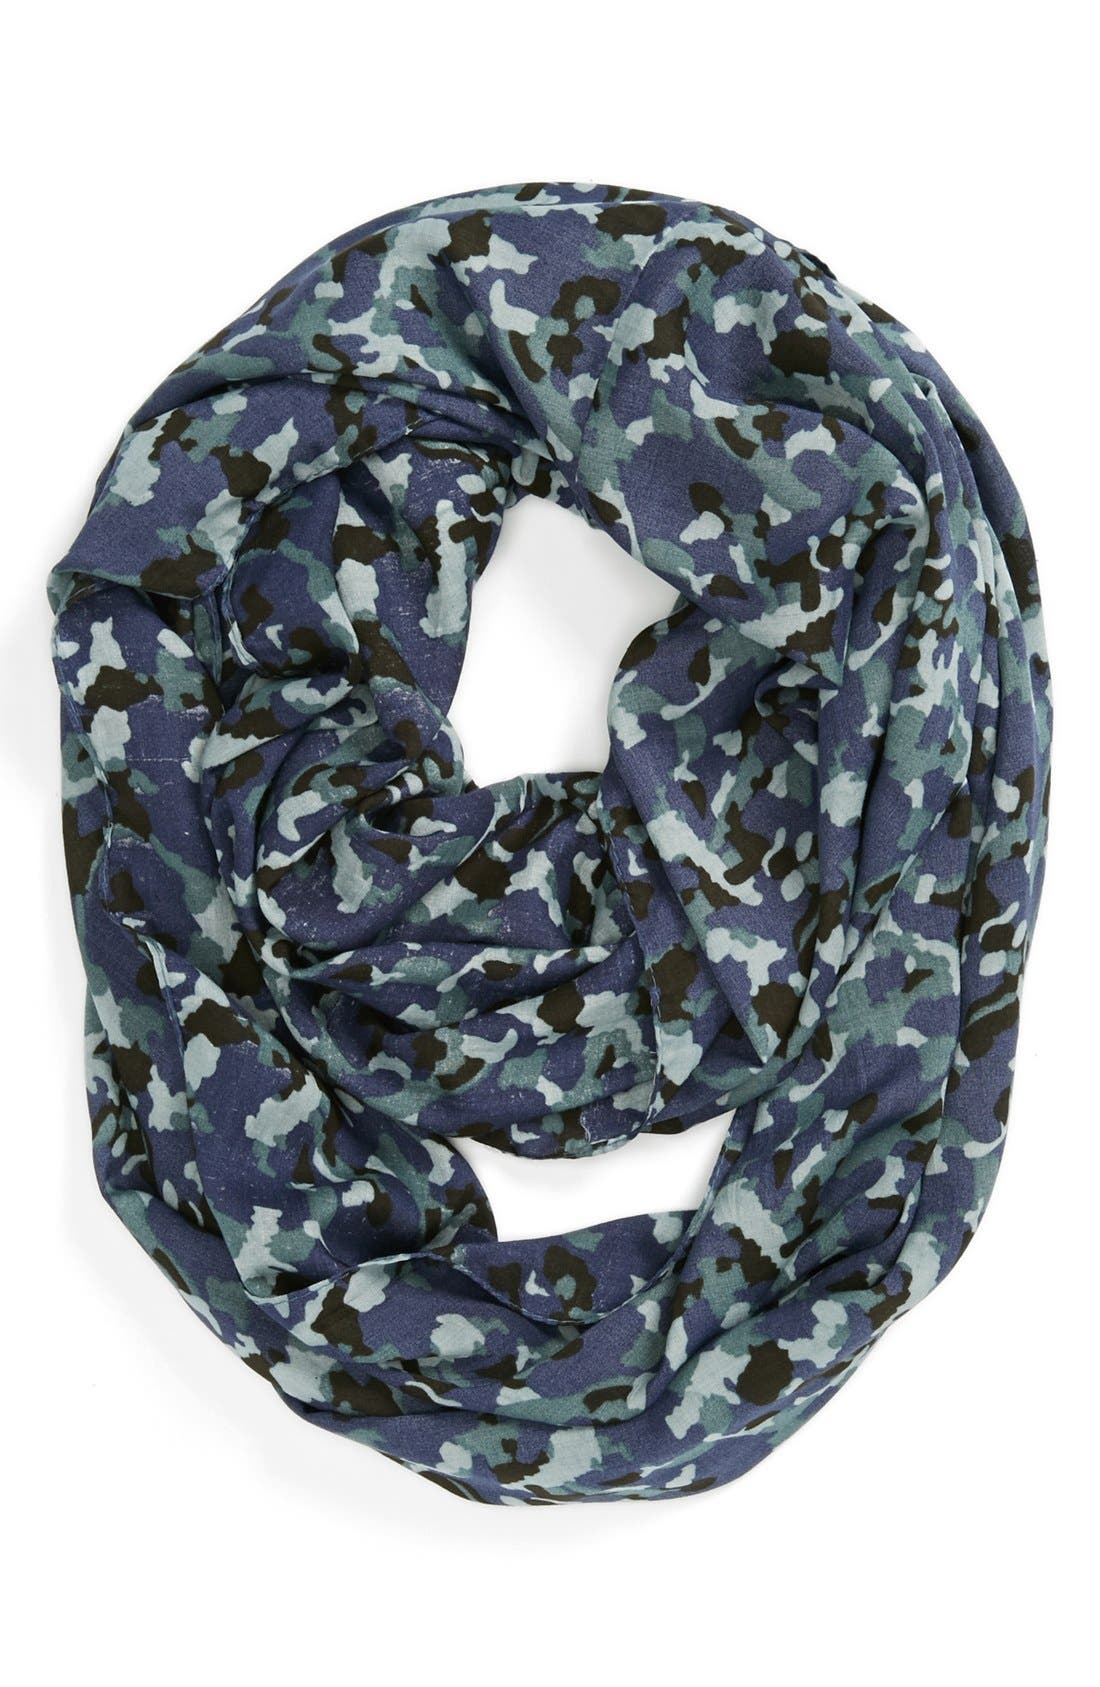 Alternate Image 1 Selected - POVERTY FLATS by rian 'Digital Camo' Infinity Scarf